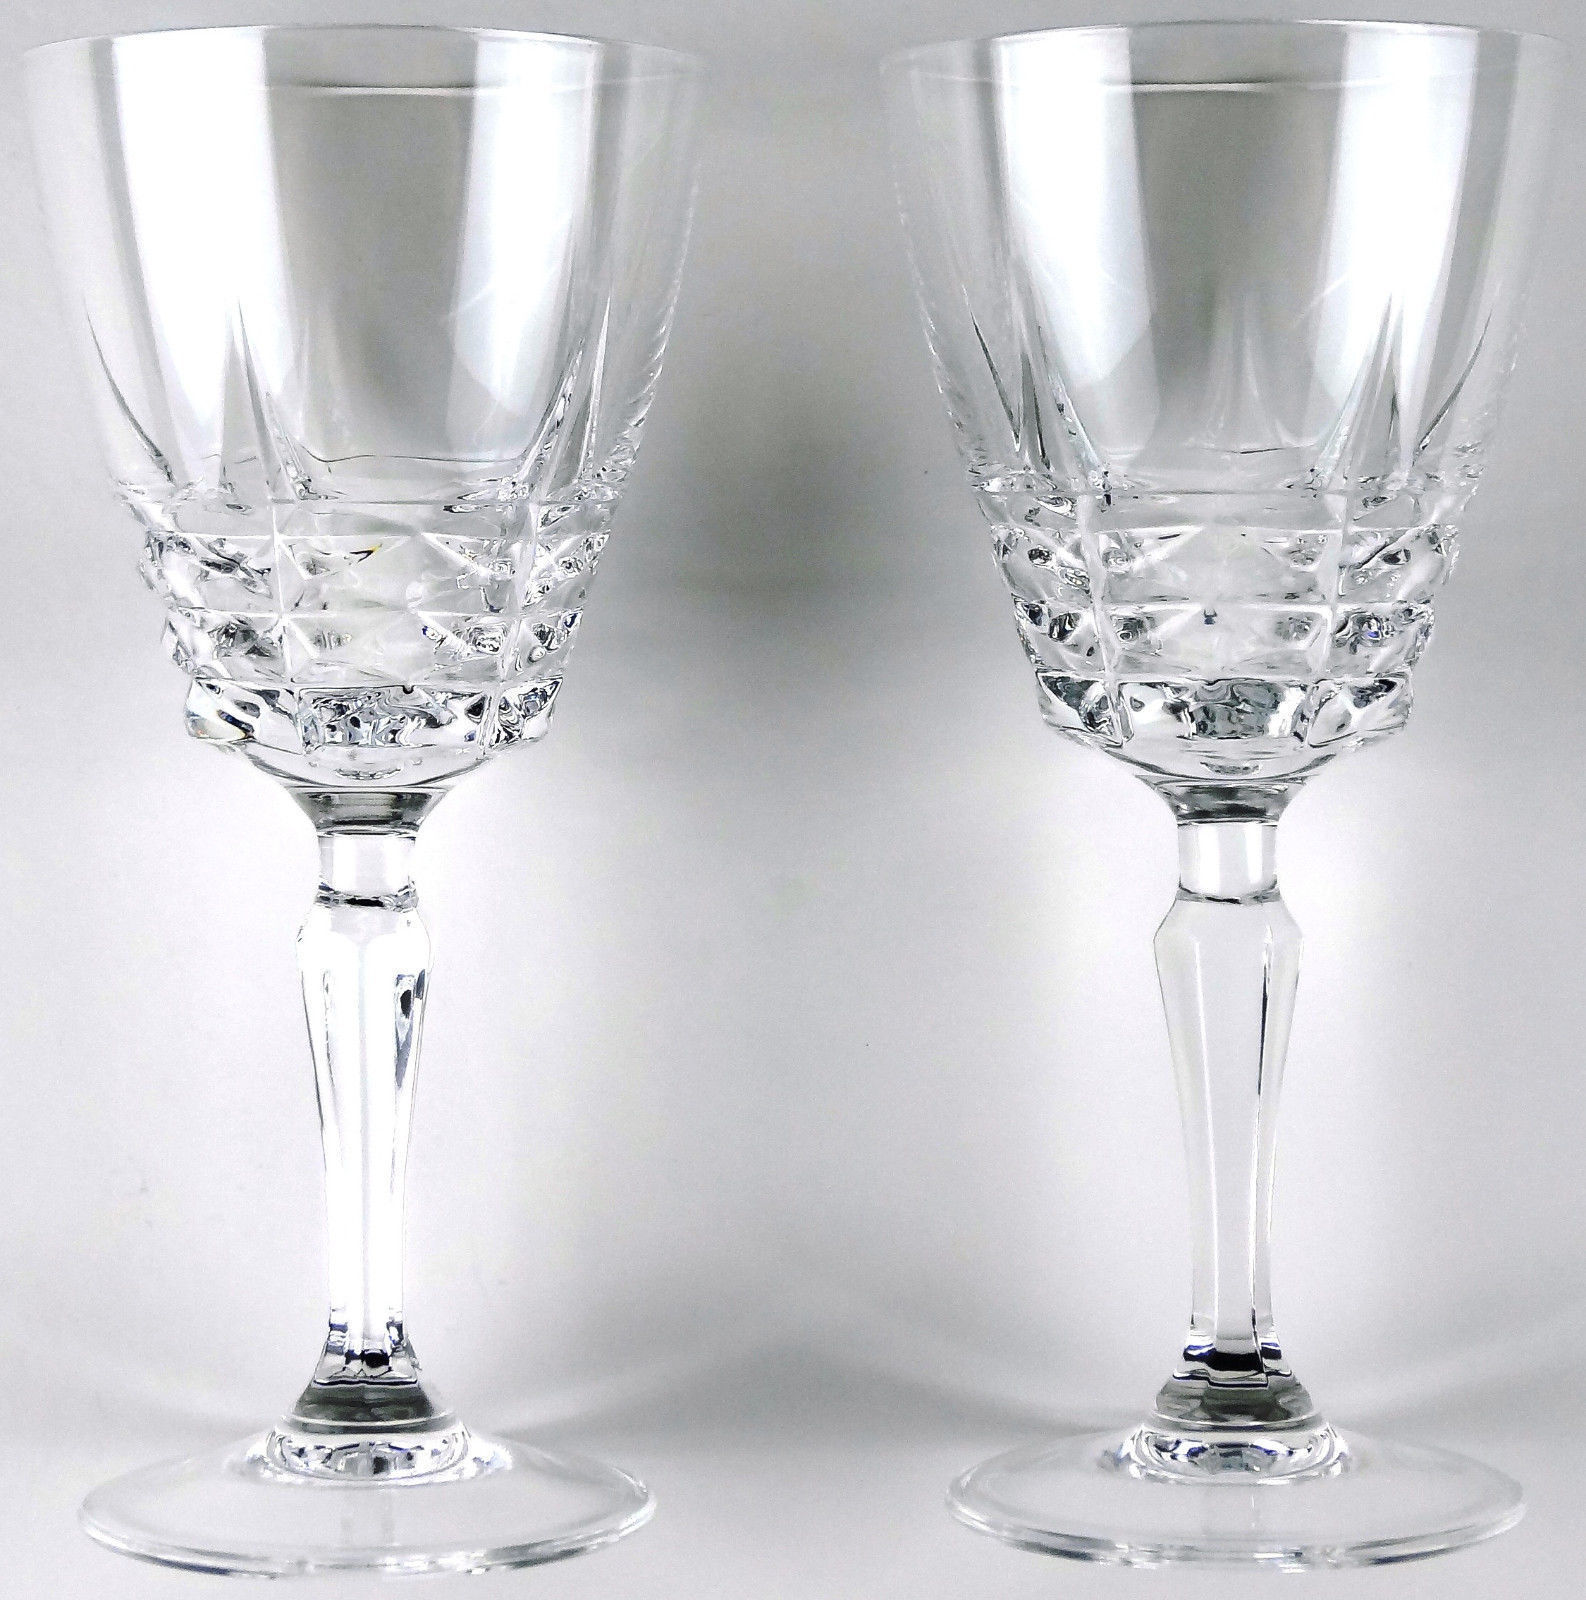 2 French Lead Crystal Goblets No. 1 W M Dalton Cherbourg Made in France